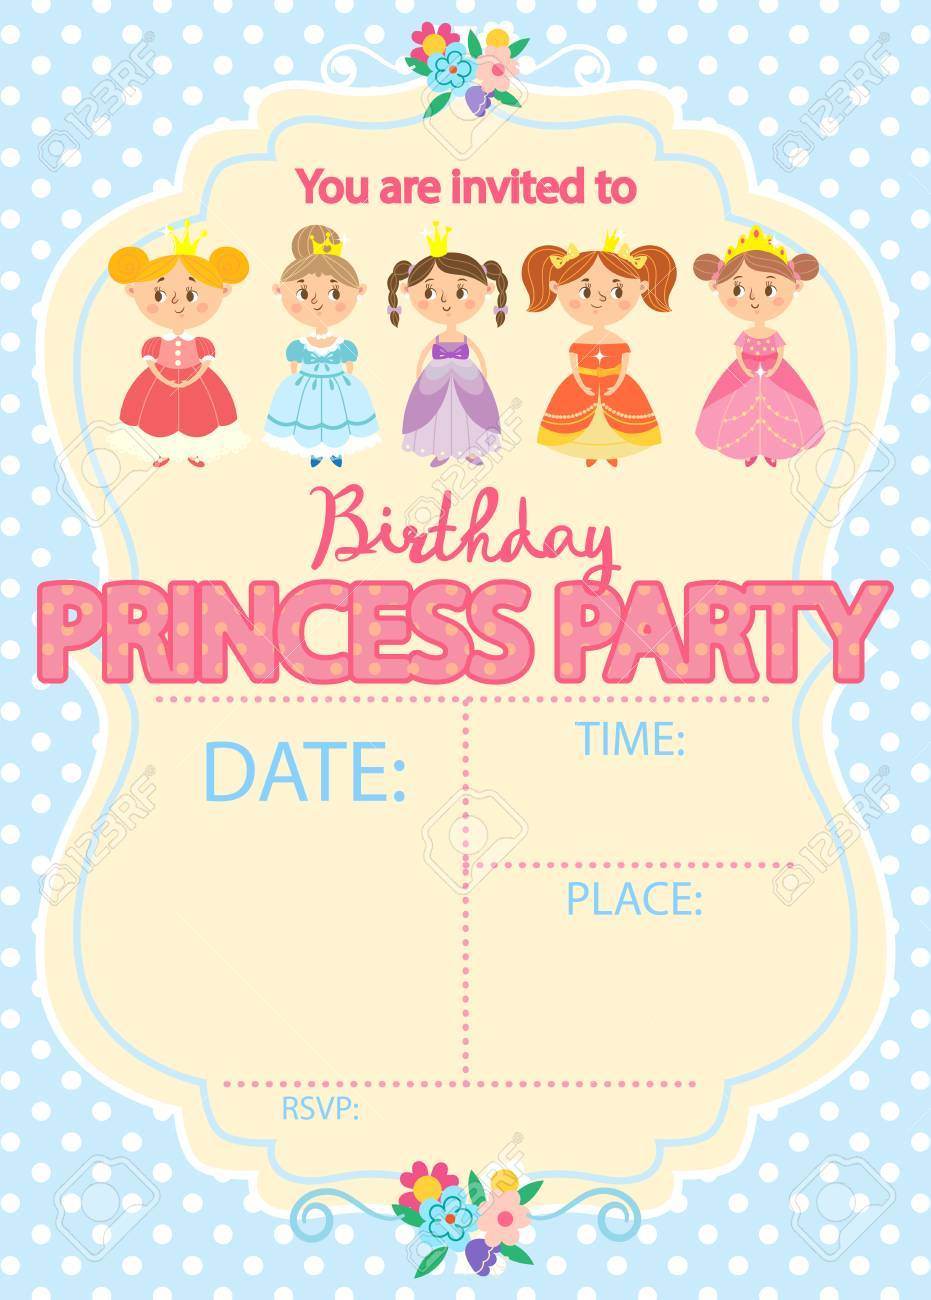 Princess birthday party invitation template card royalty free princess birthday party invitation template card stock vector 69466902 filmwisefo